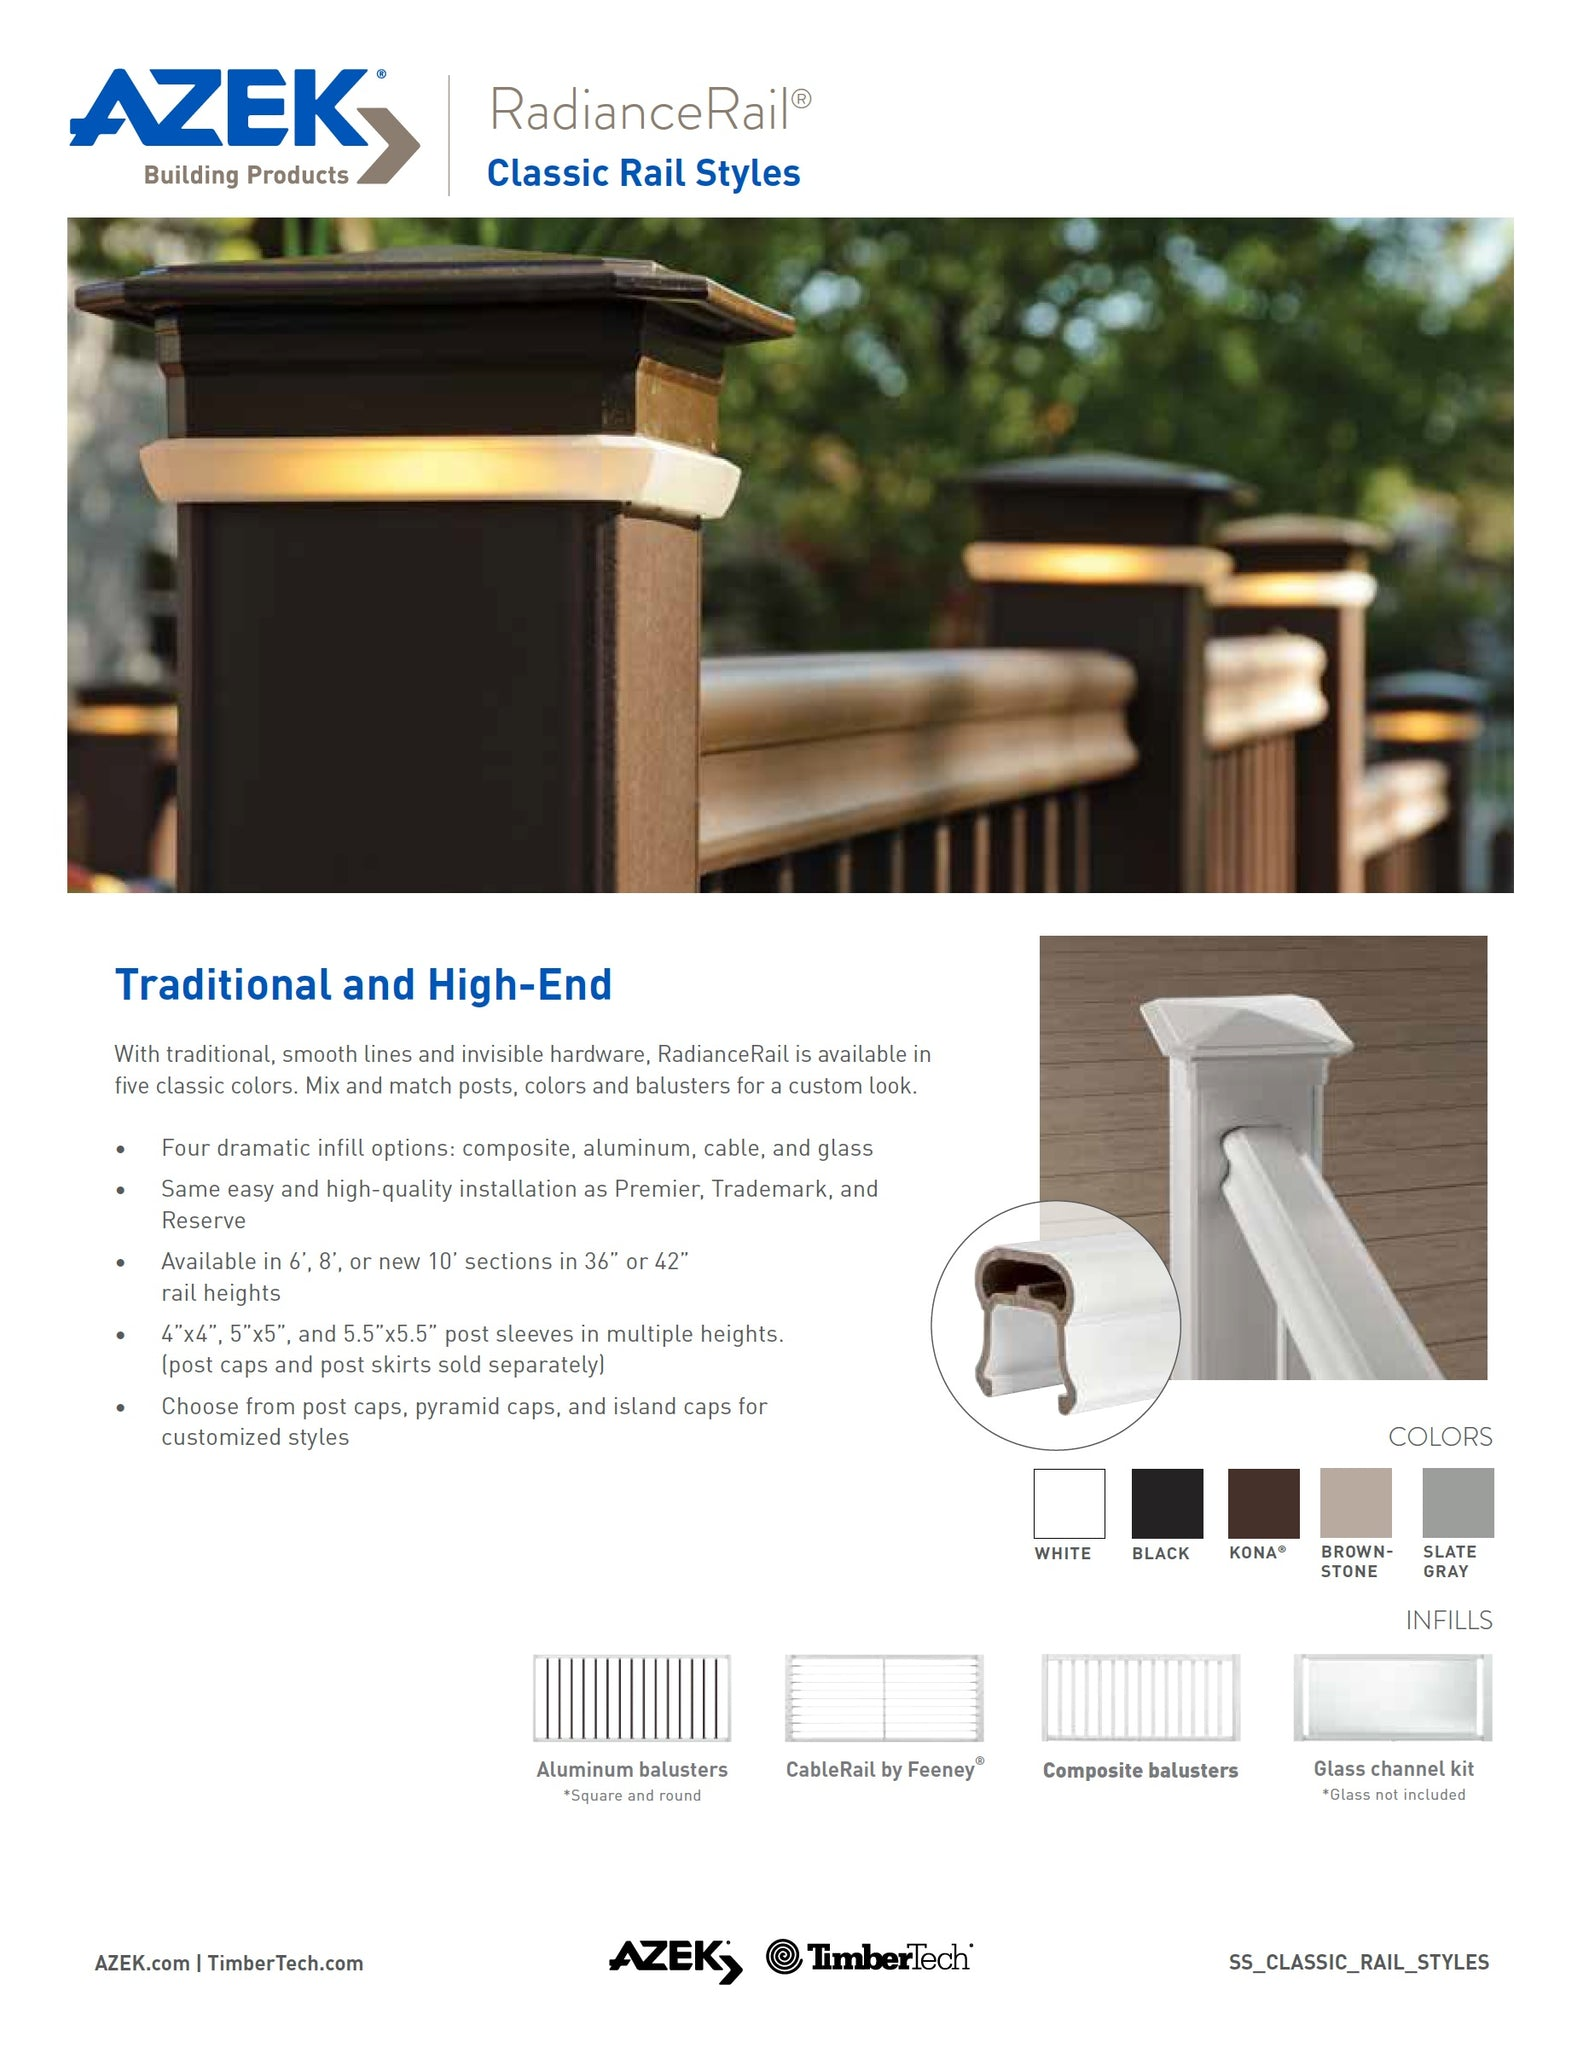 TimberTech RadianceRail Composite Kit System Rails, Balusters, Hardware, Cable Infill